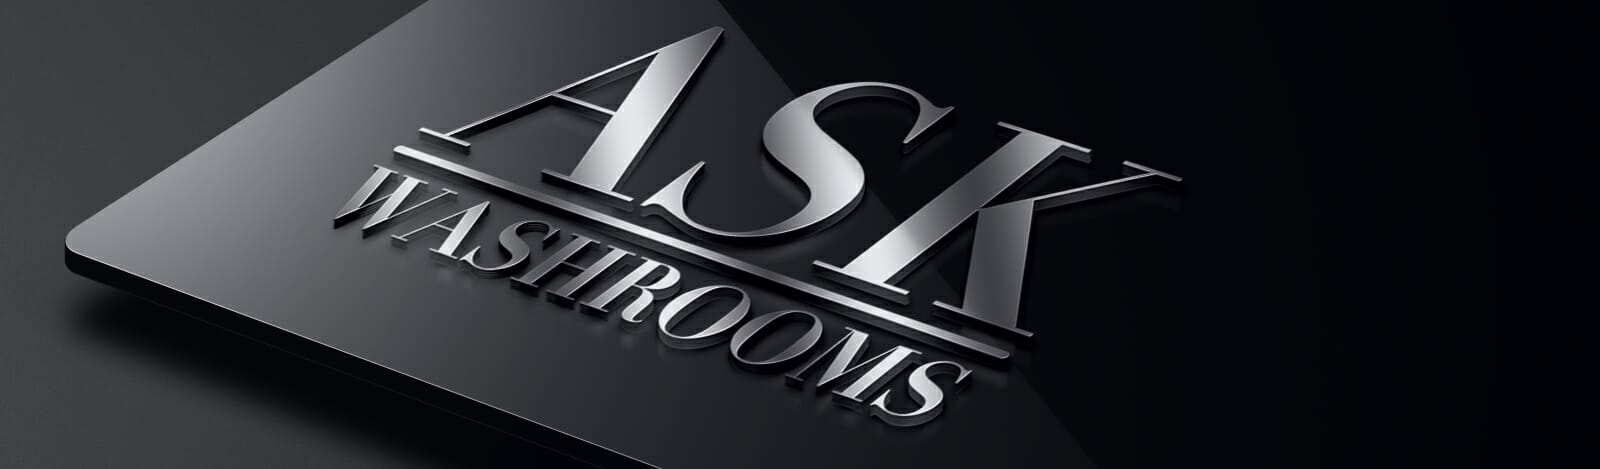 ask washroom